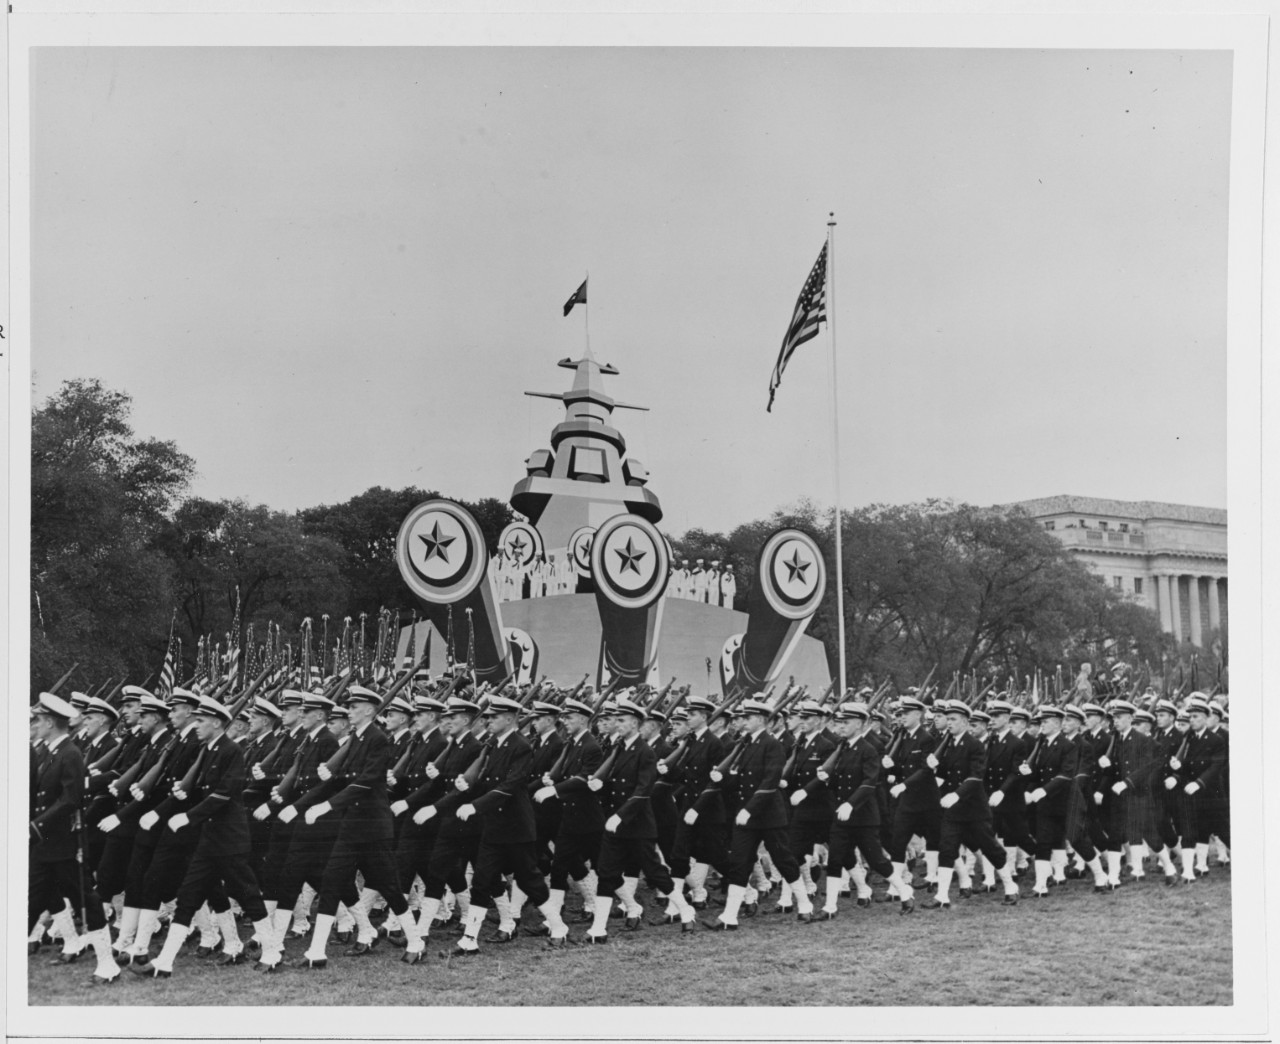 The Nation's Capital Welcomes Admiral Nimitz